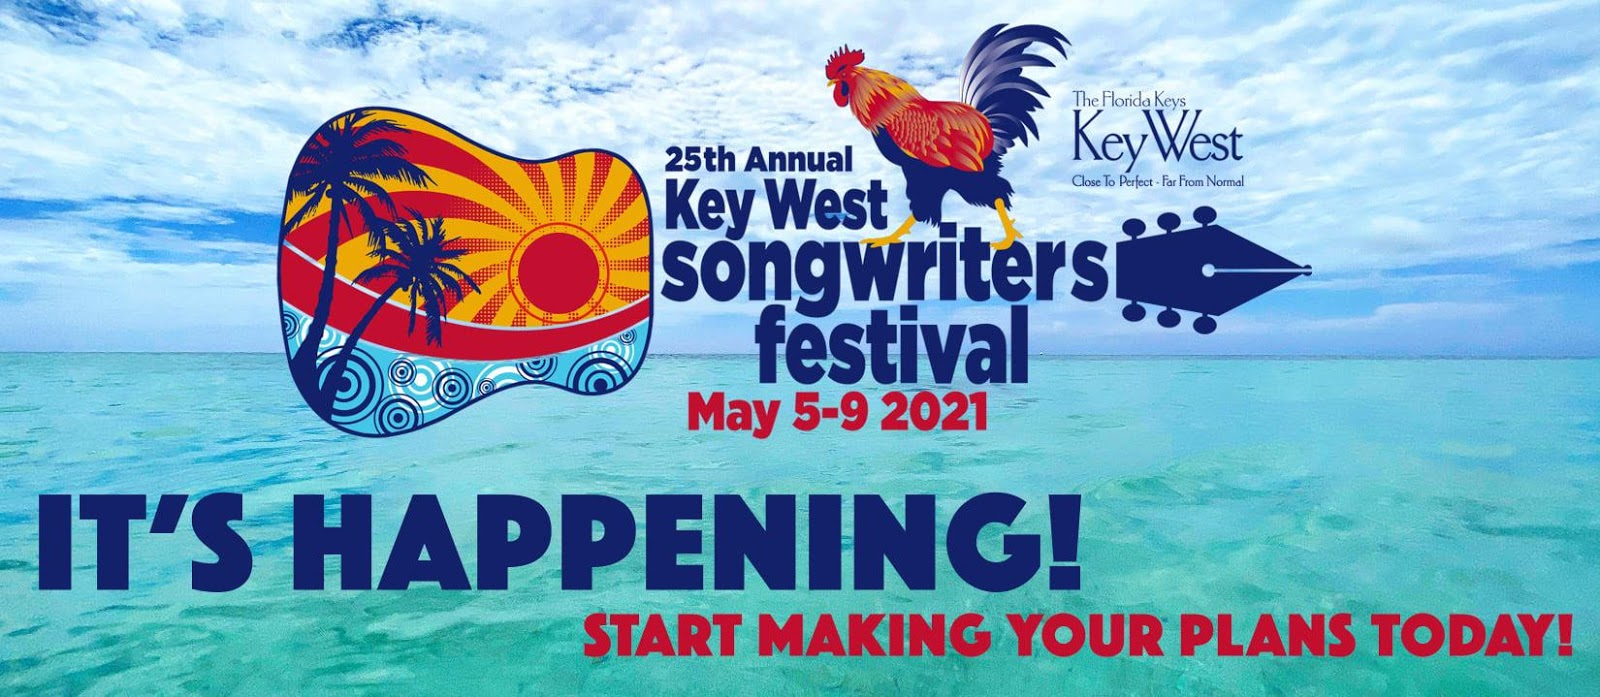 2021 Key West Songwriters Festival Poster